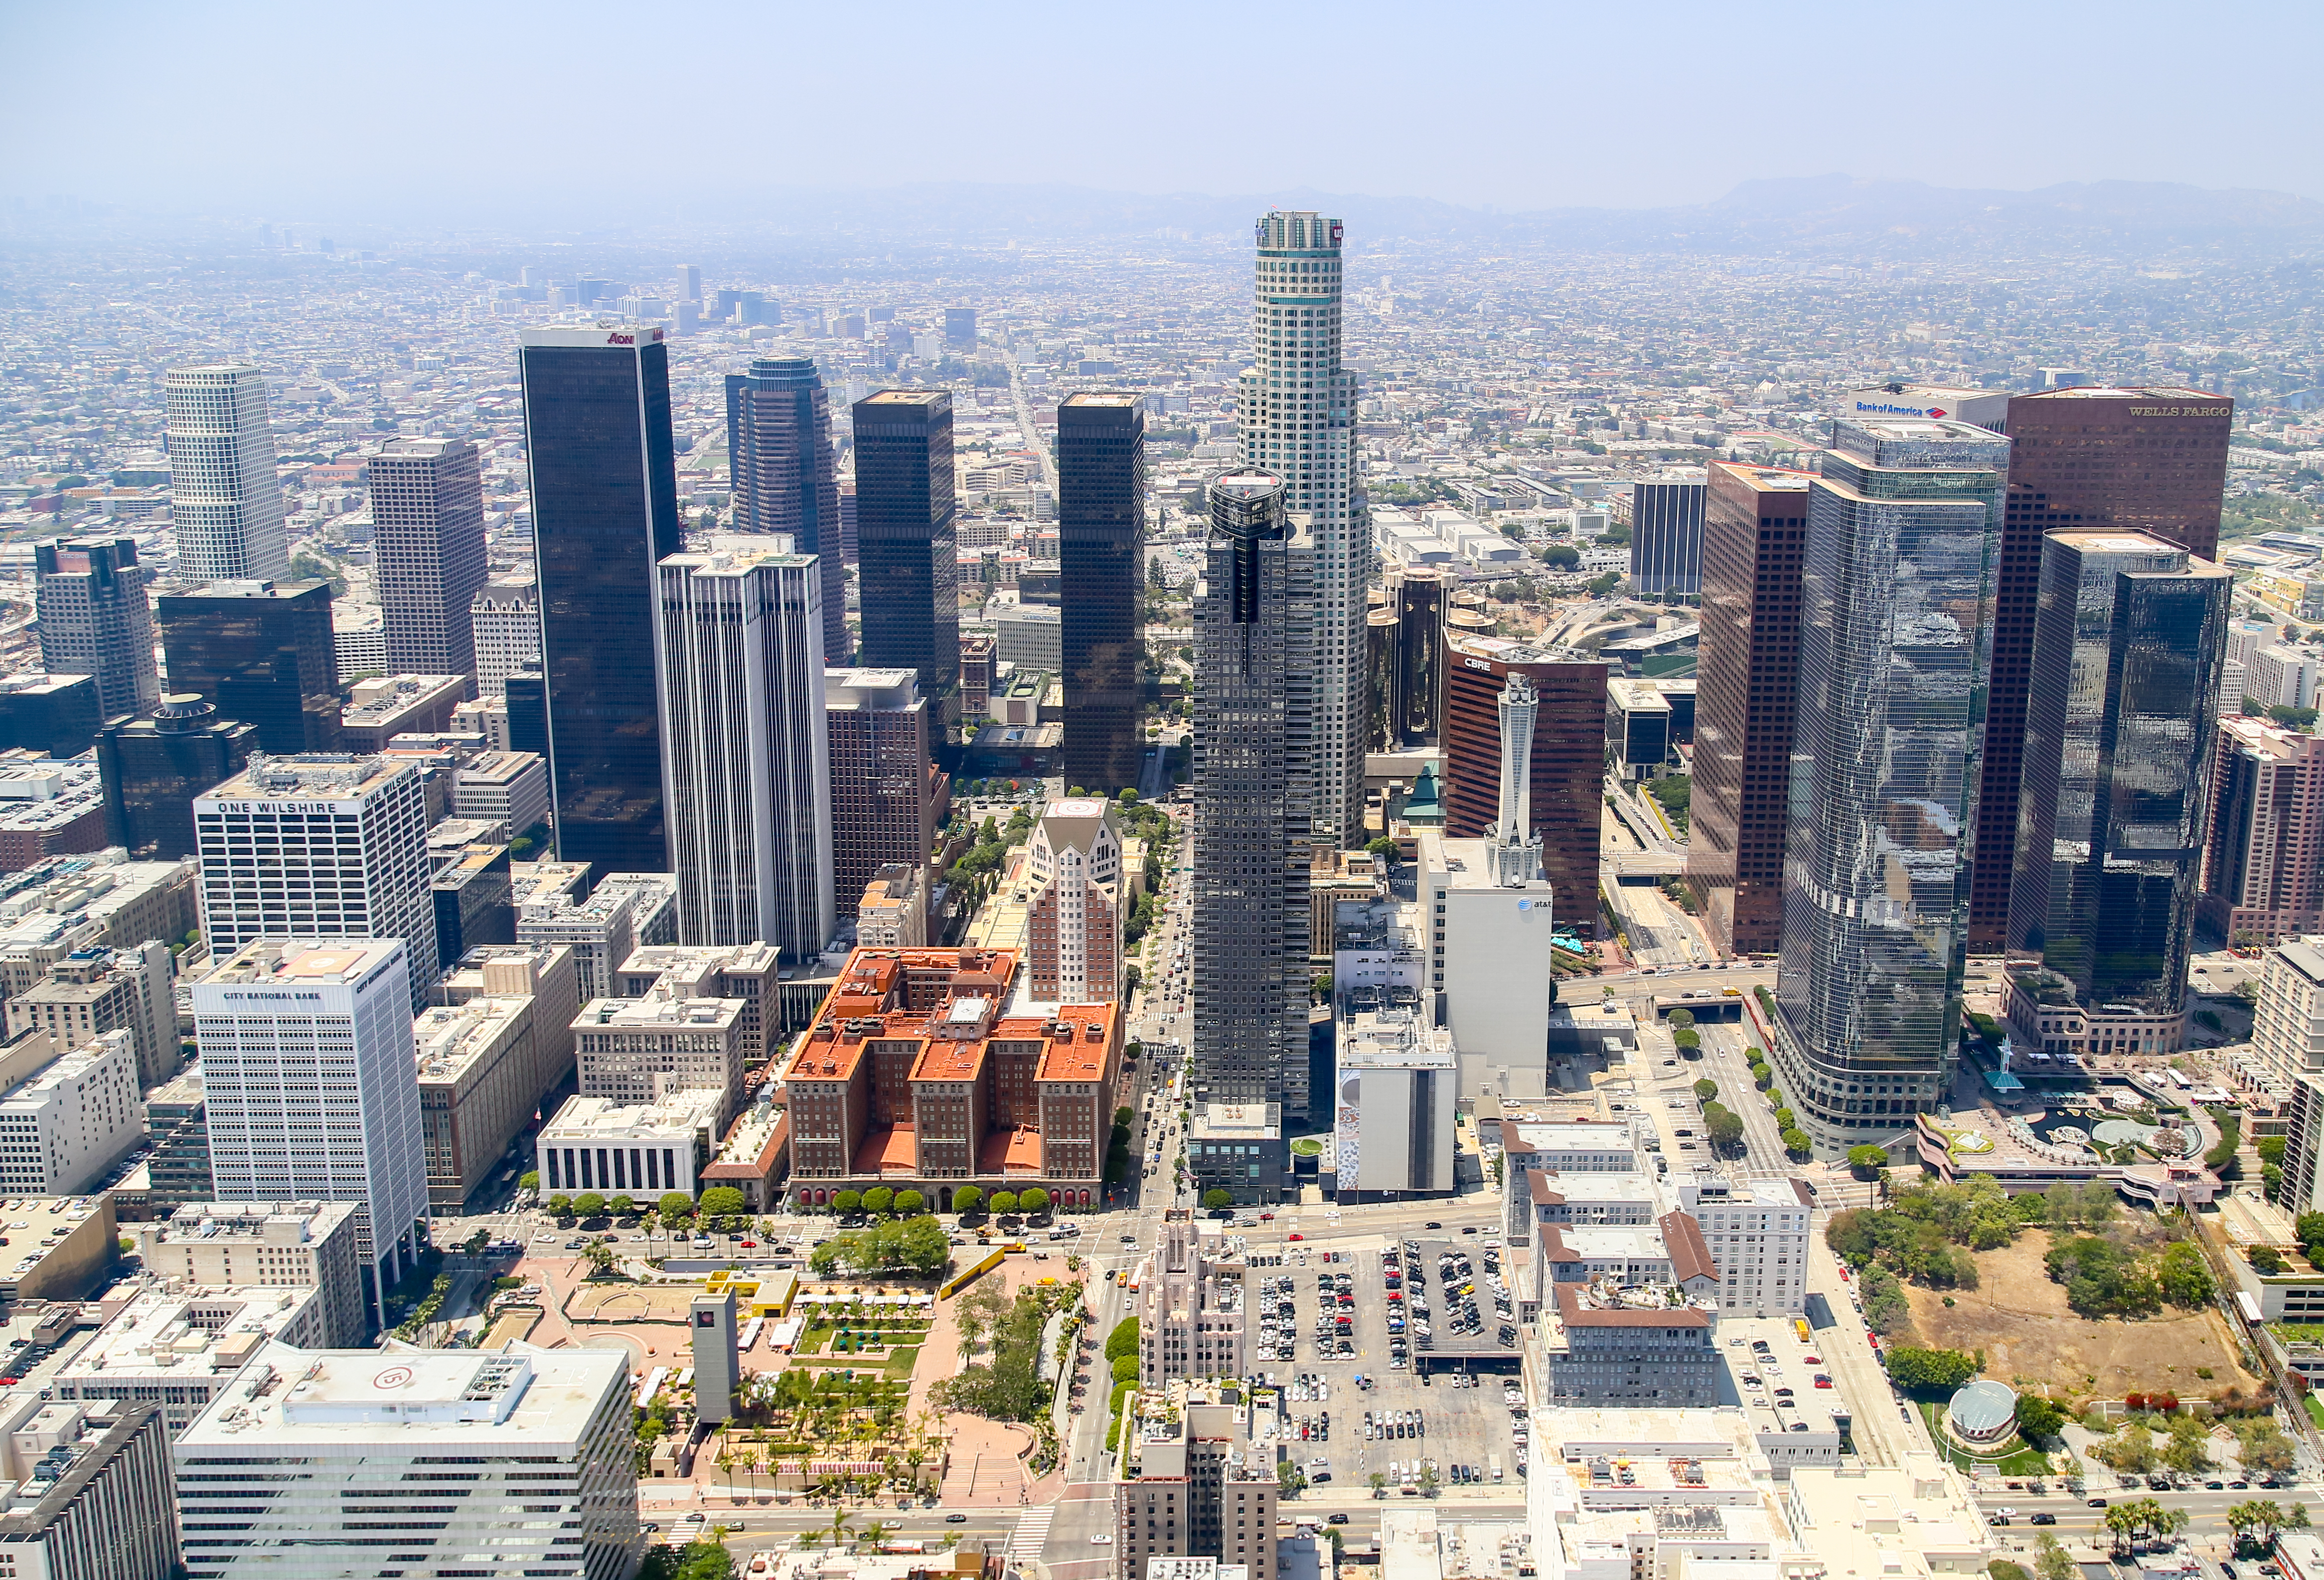 Why does LA's mandatory retrofit program ignore vulnerable steel skyscrapers?